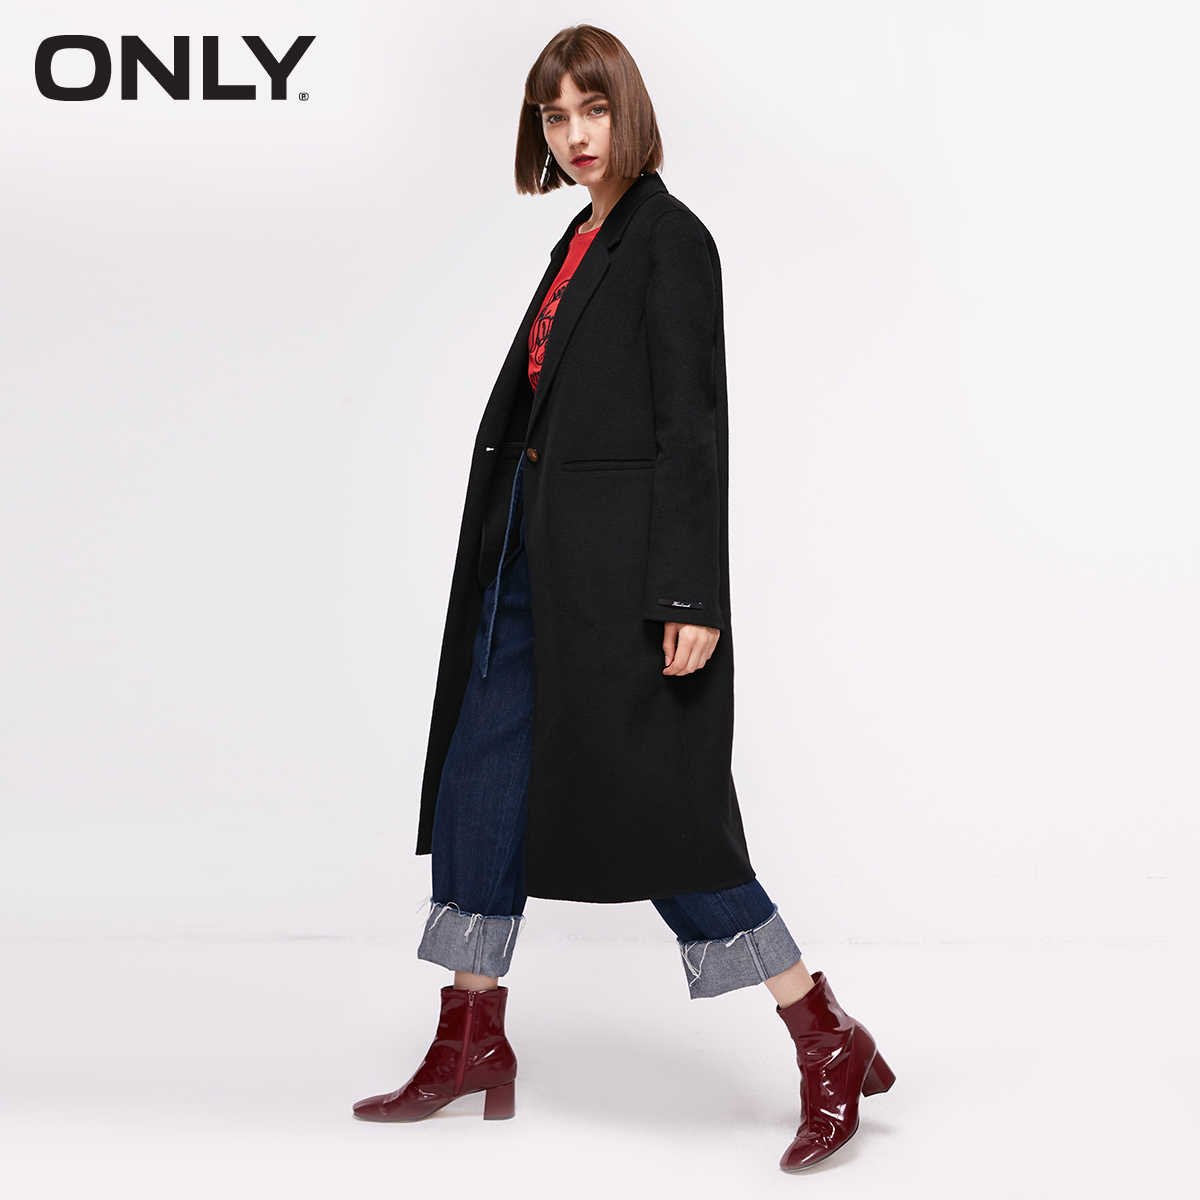 Women's Mid-length Two-faced Woolen Coat  | 11836U501